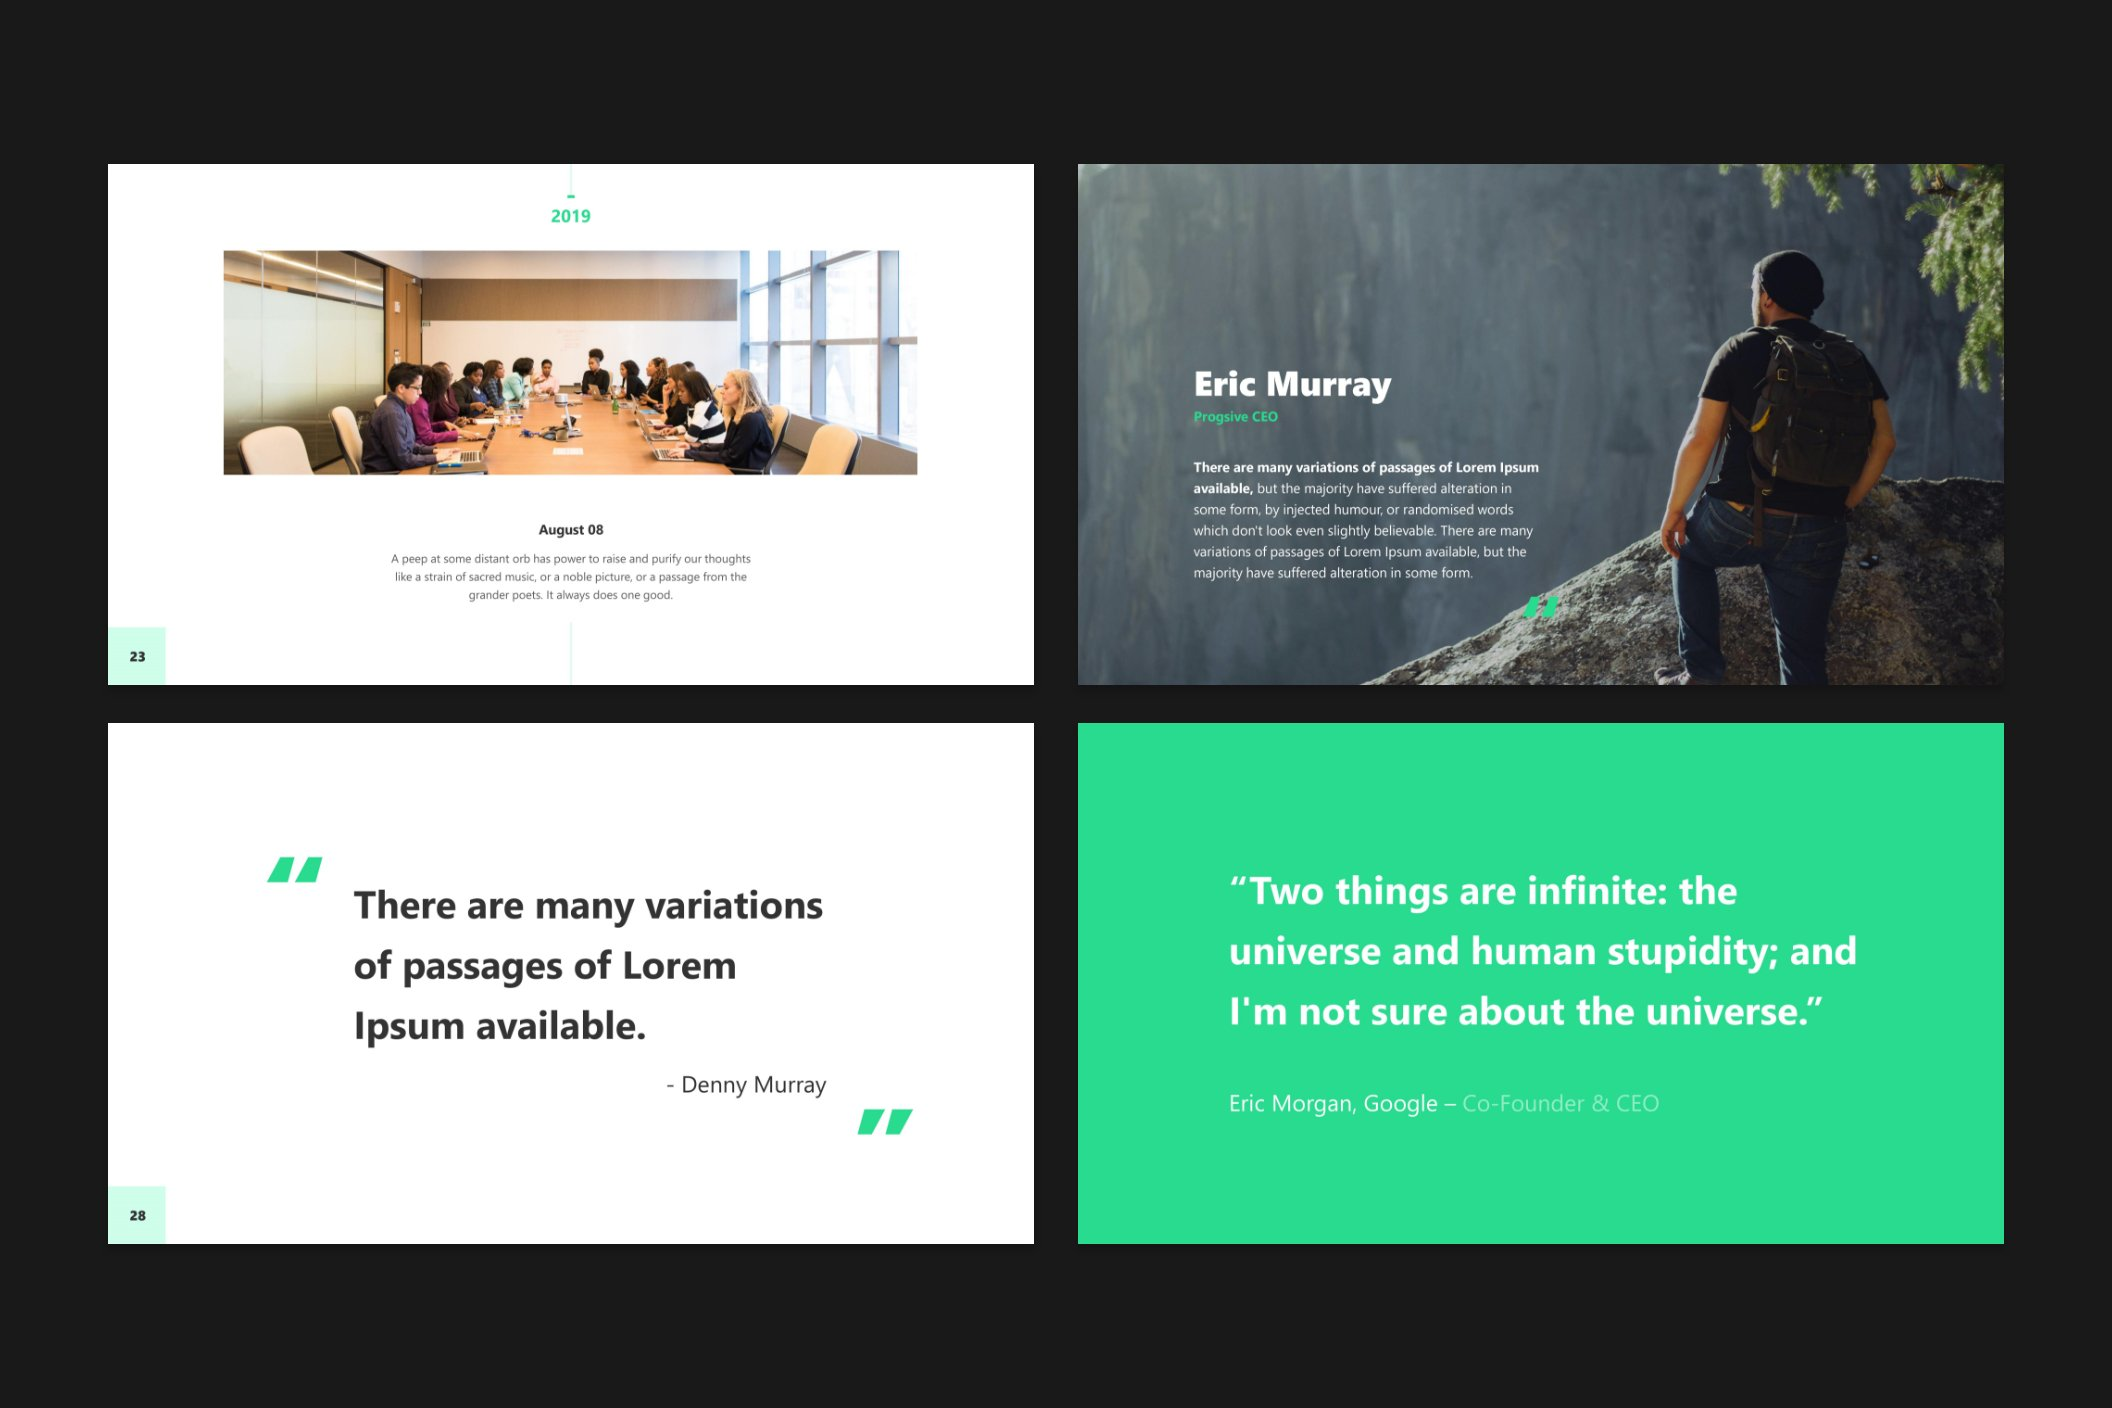 There are special slides for quotes or motivating phrases.